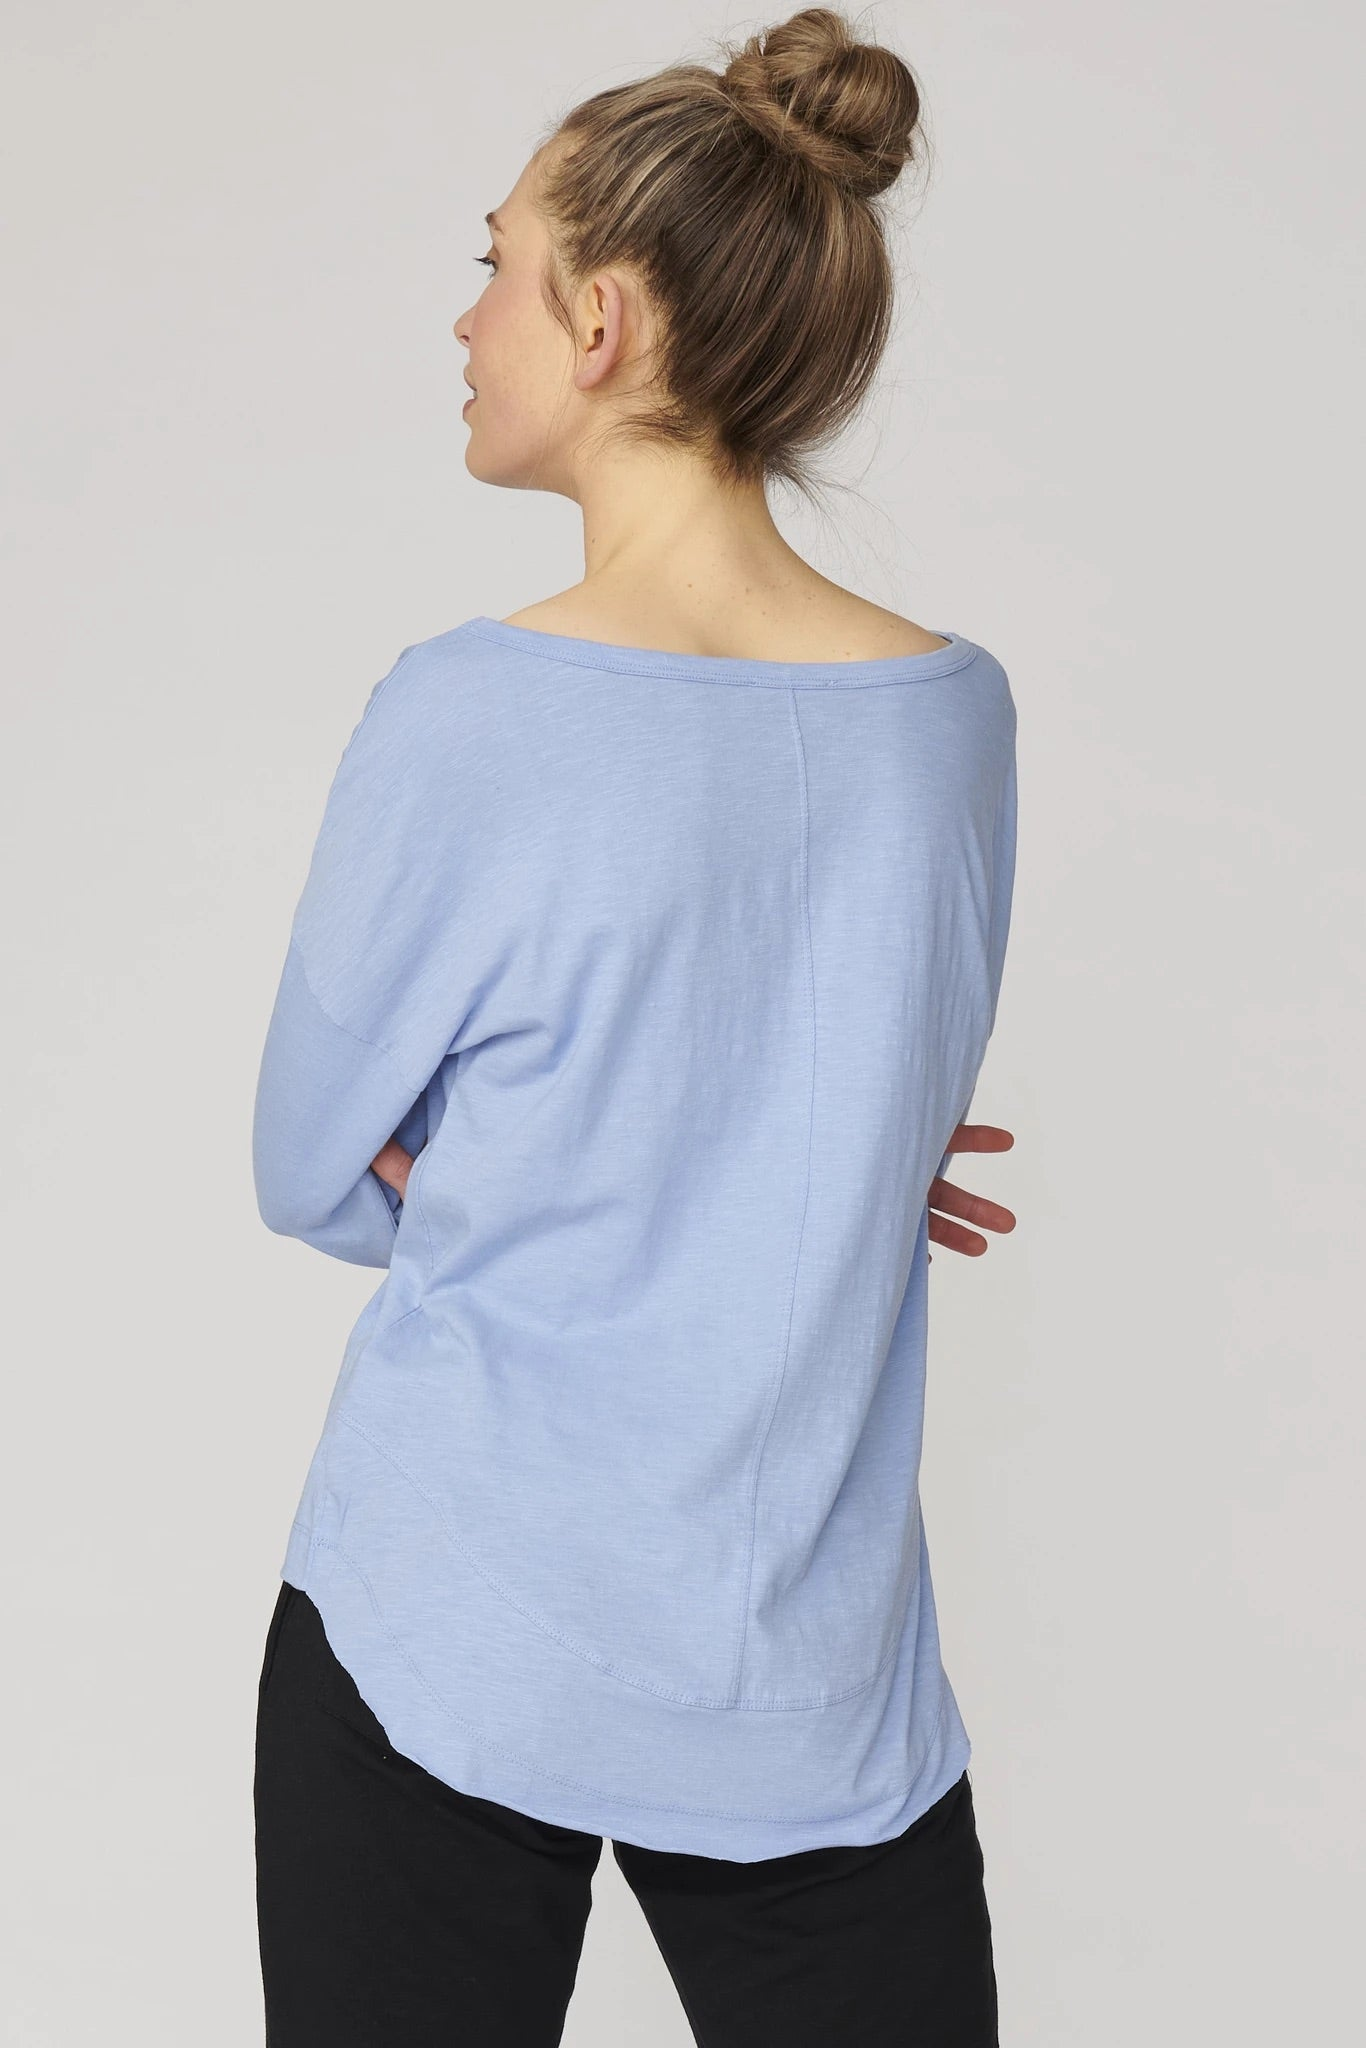 Lulu Organic Cotton Essentials - New York Long Sleeve in Robot Blue